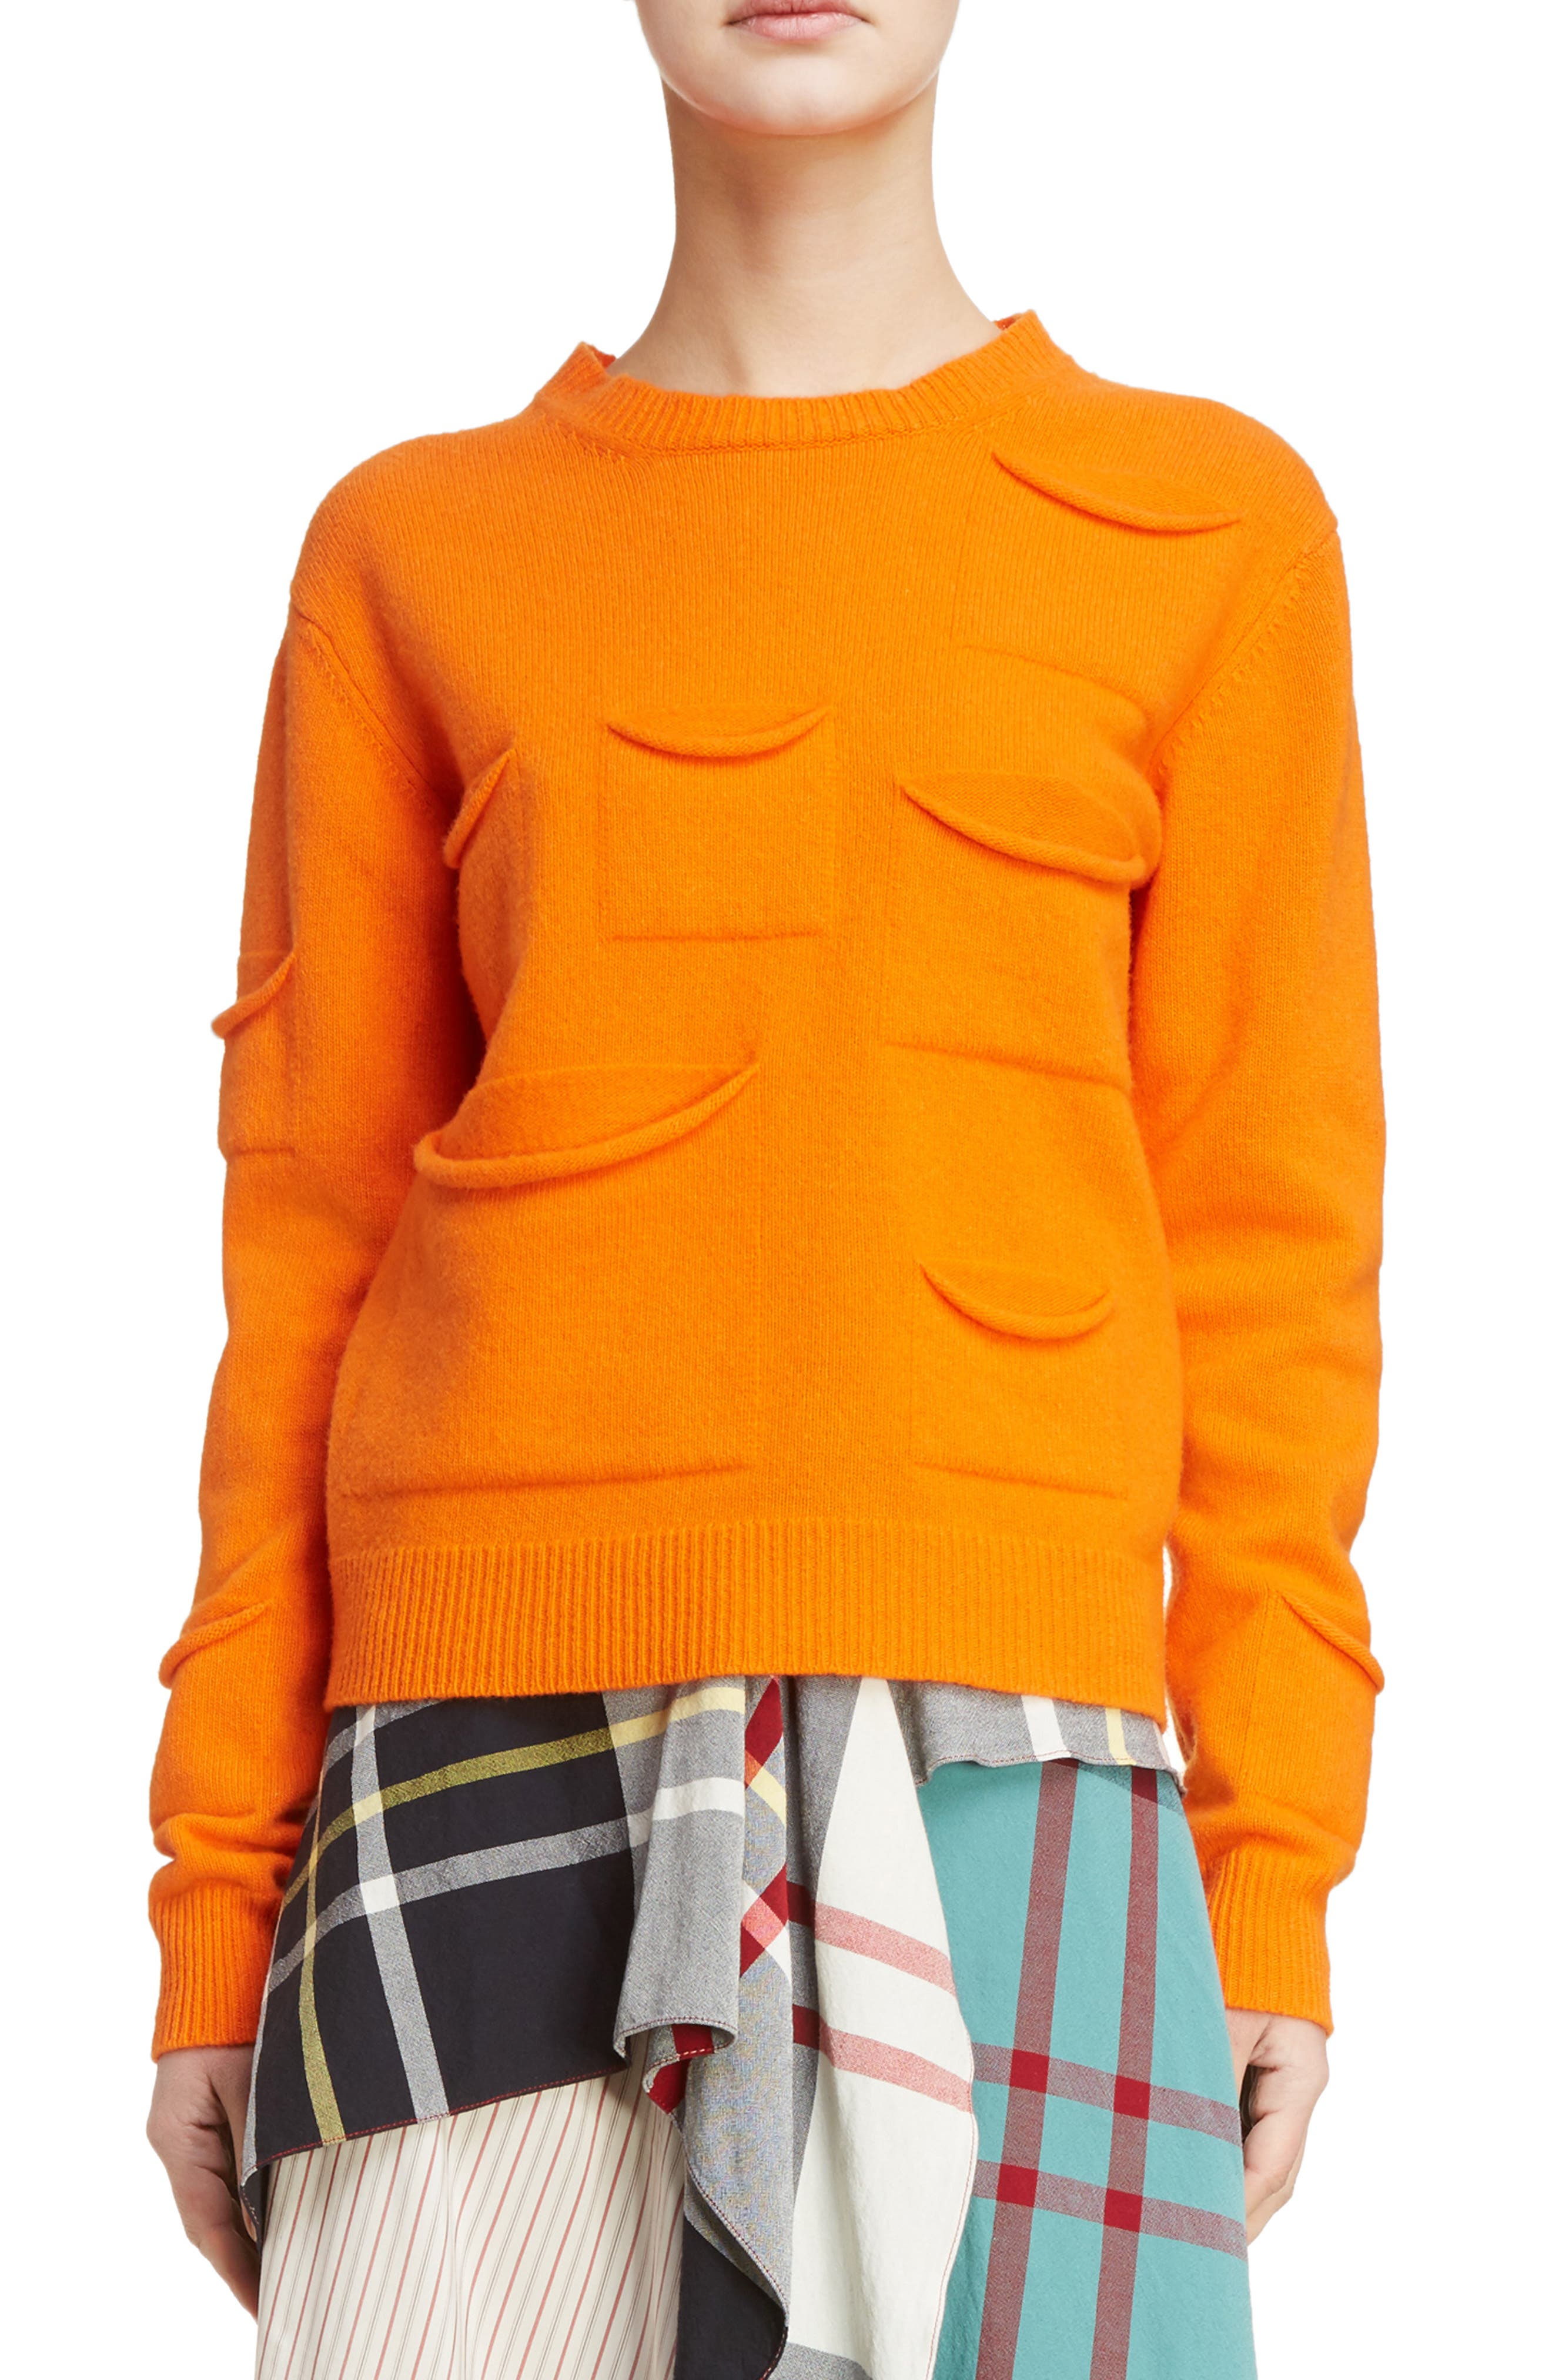 J.W.ANDERSON Multi Pocket Crewneck Sweater,                         Main,                         color, 800